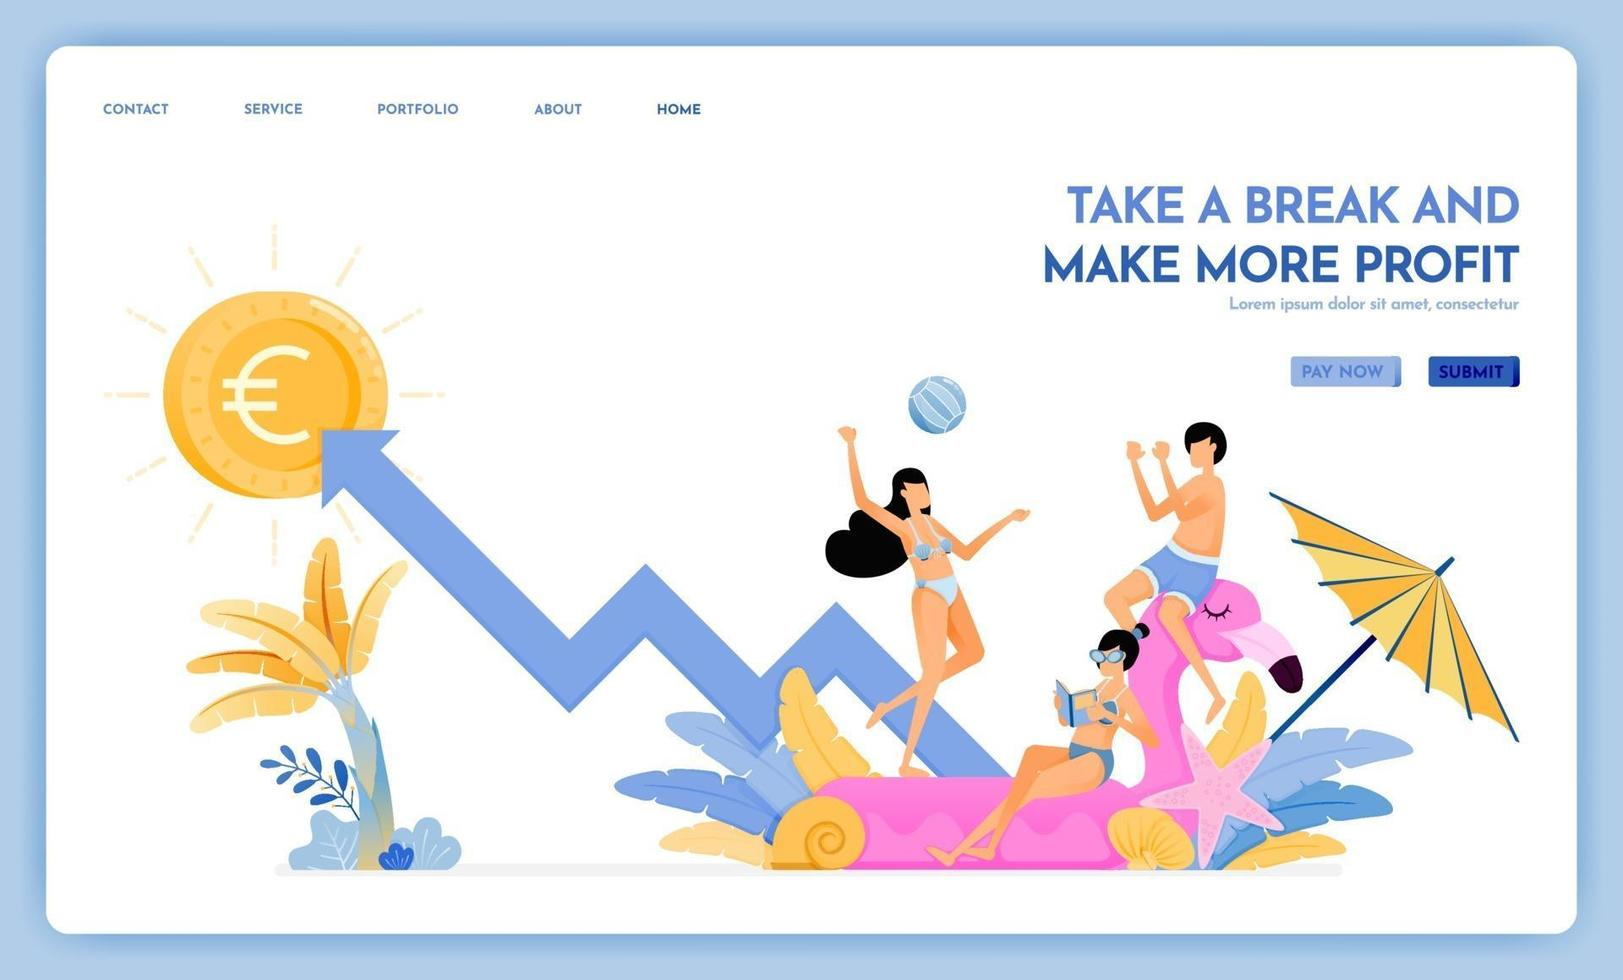 travel website with theme of take a break and make more profit enjoy traveling and vacationing to support growth Vector design can be used for poster banner ads website web marketing flyer